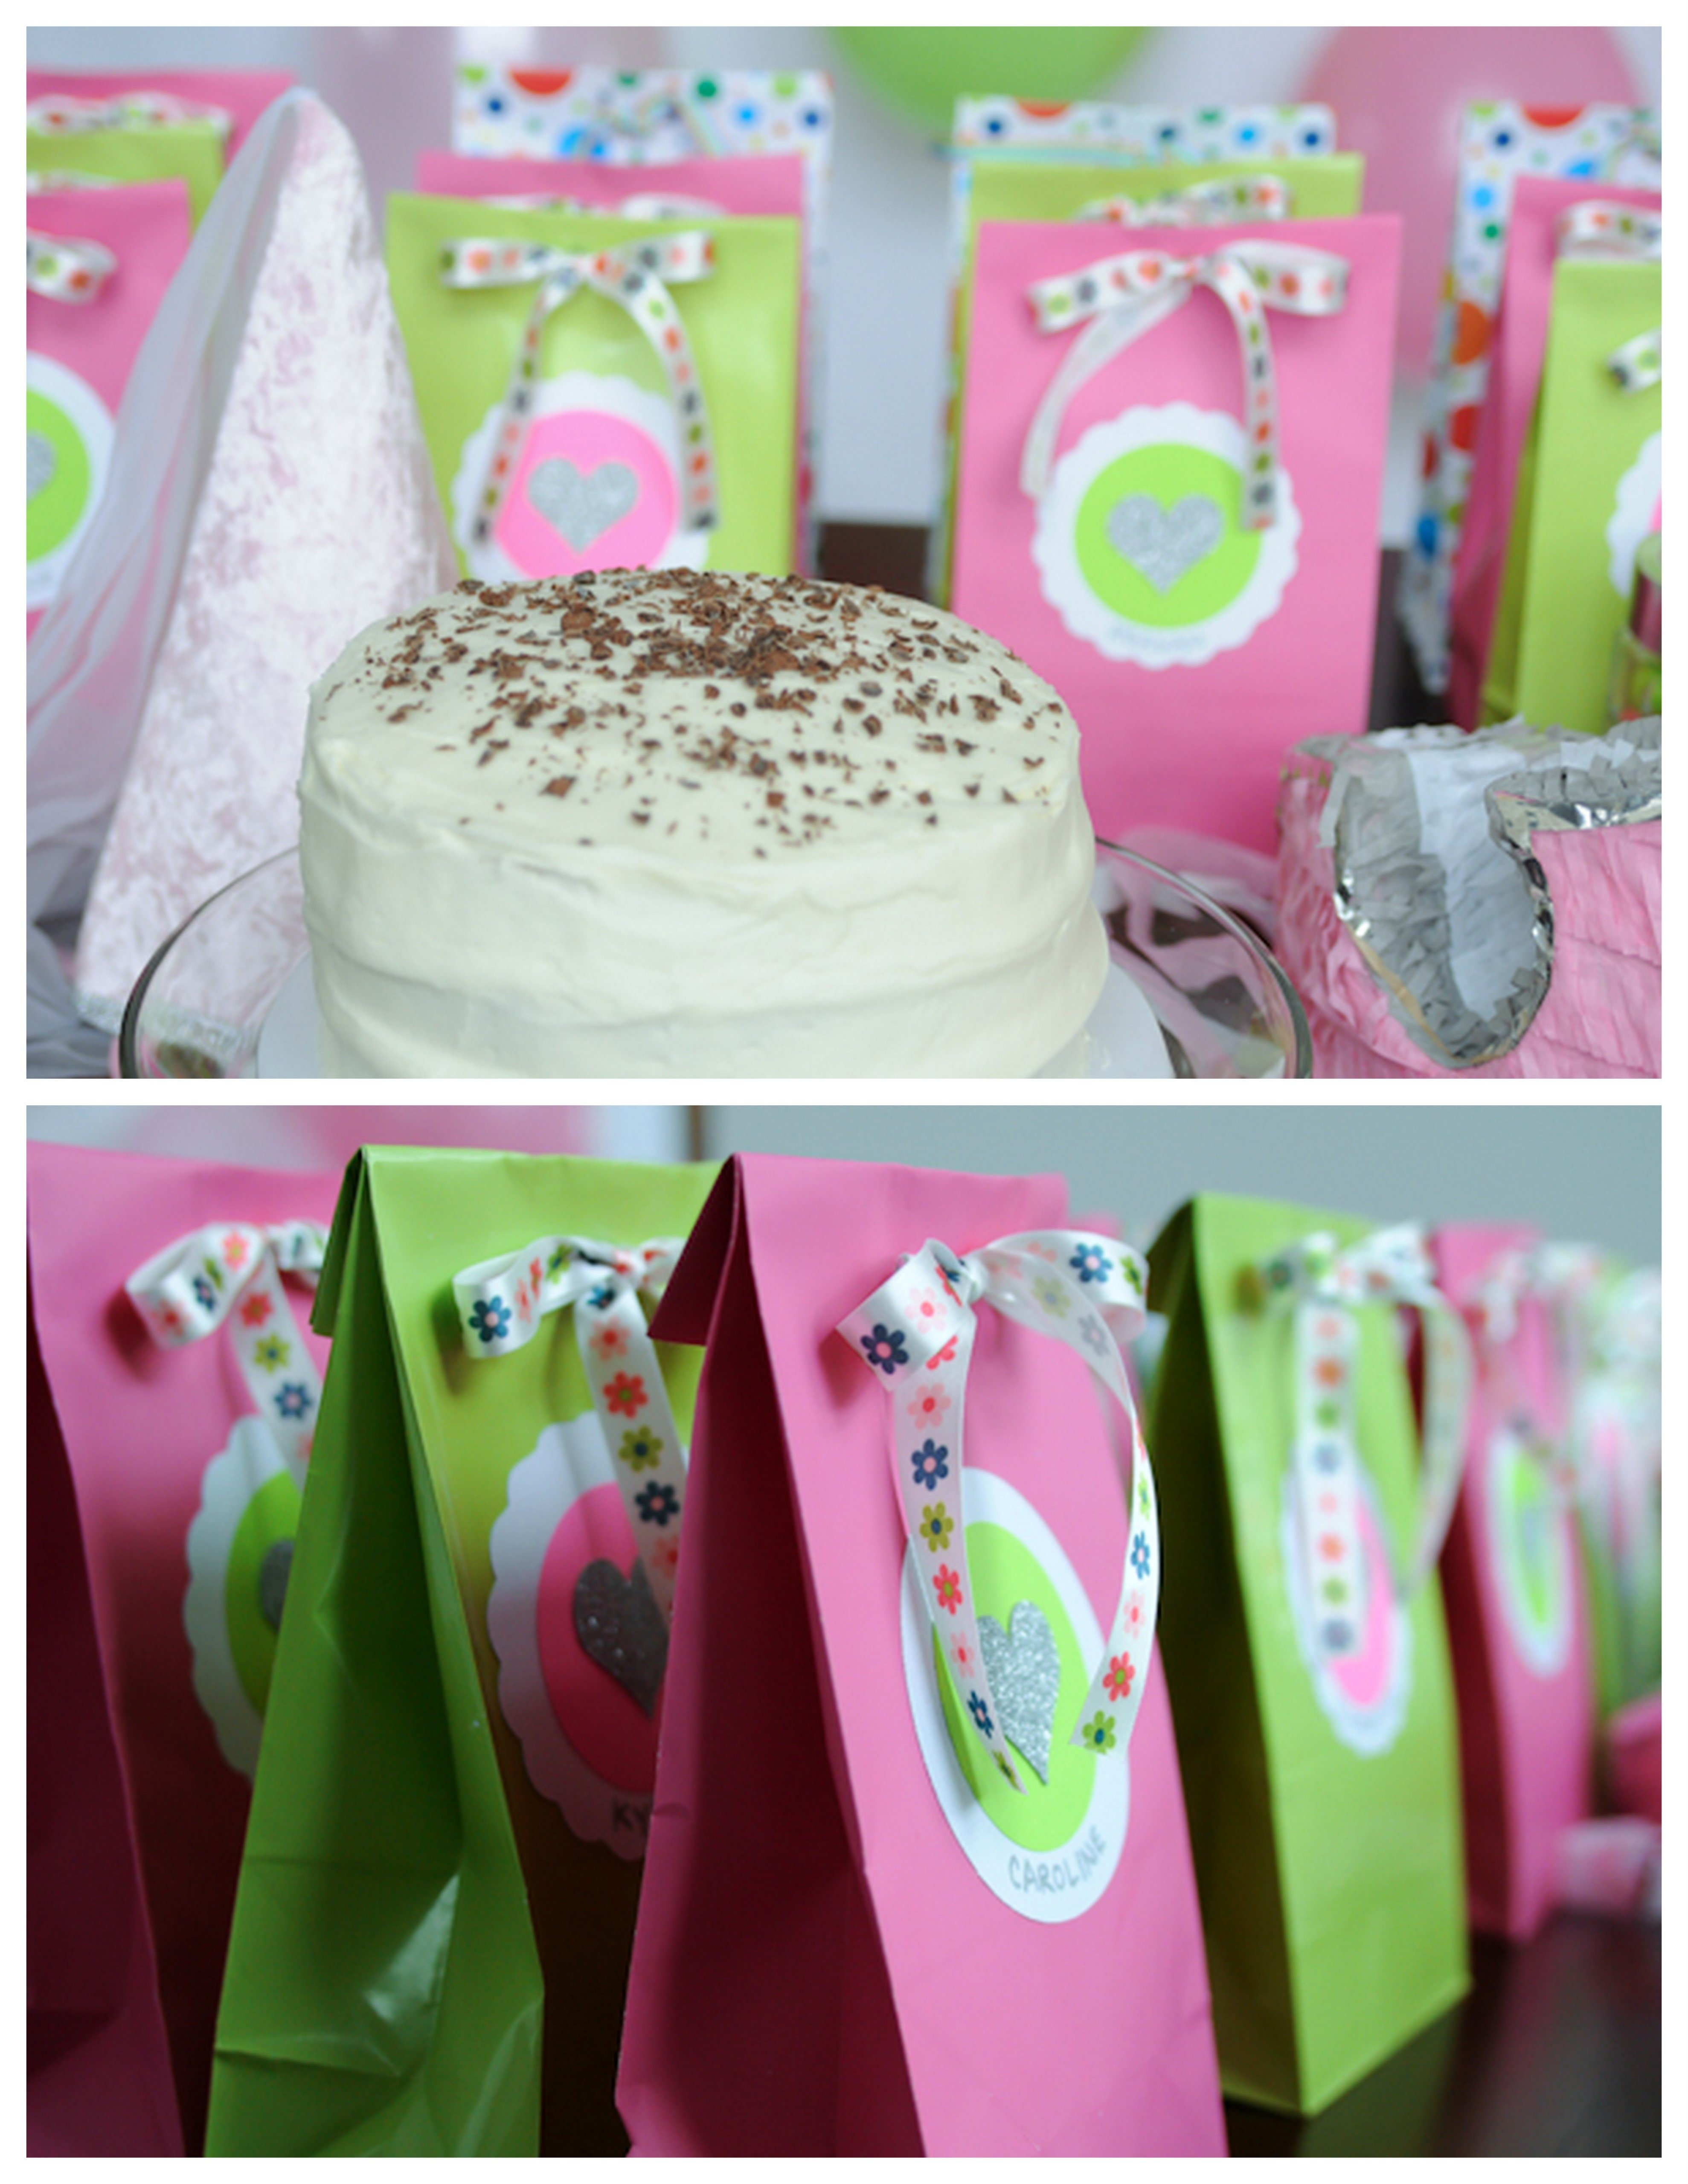 10 Gorgeous 5 Year Old Girl Birthday Party Ideas cute year birthday party ideas entertainment ideas for visit 15 2020